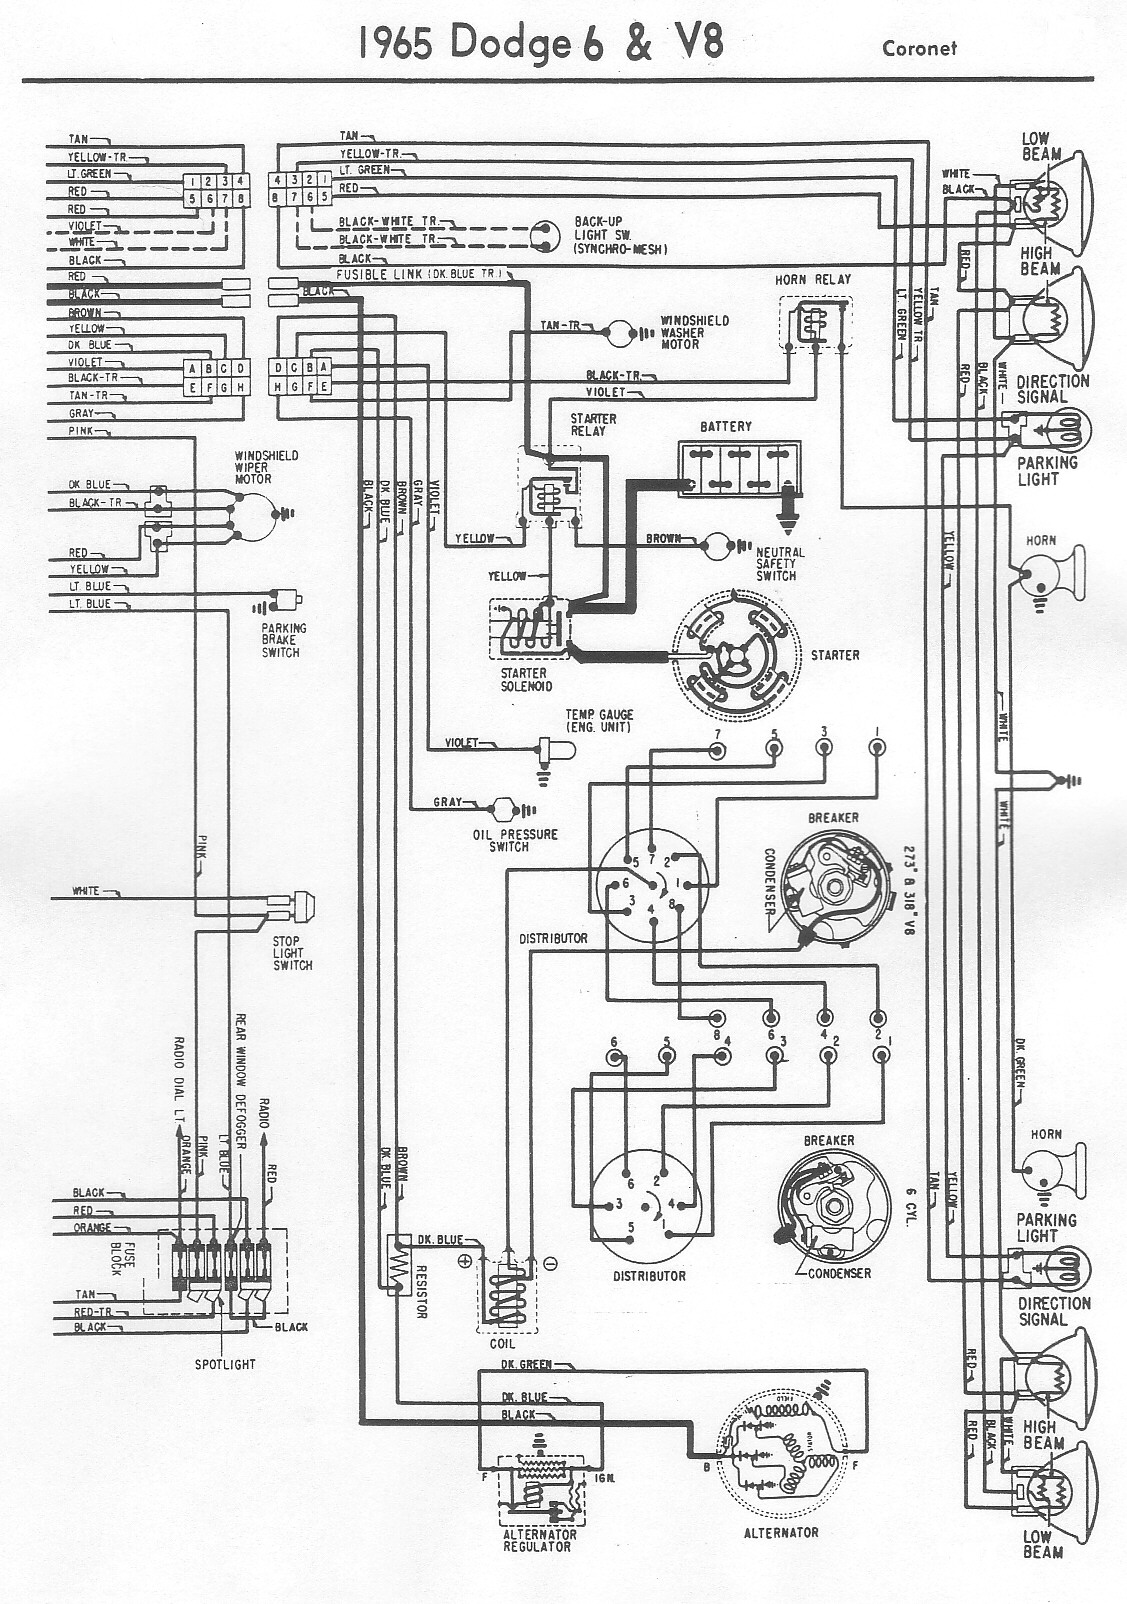 1970 Dodge Dart Swinger A Wiring Diagram For The